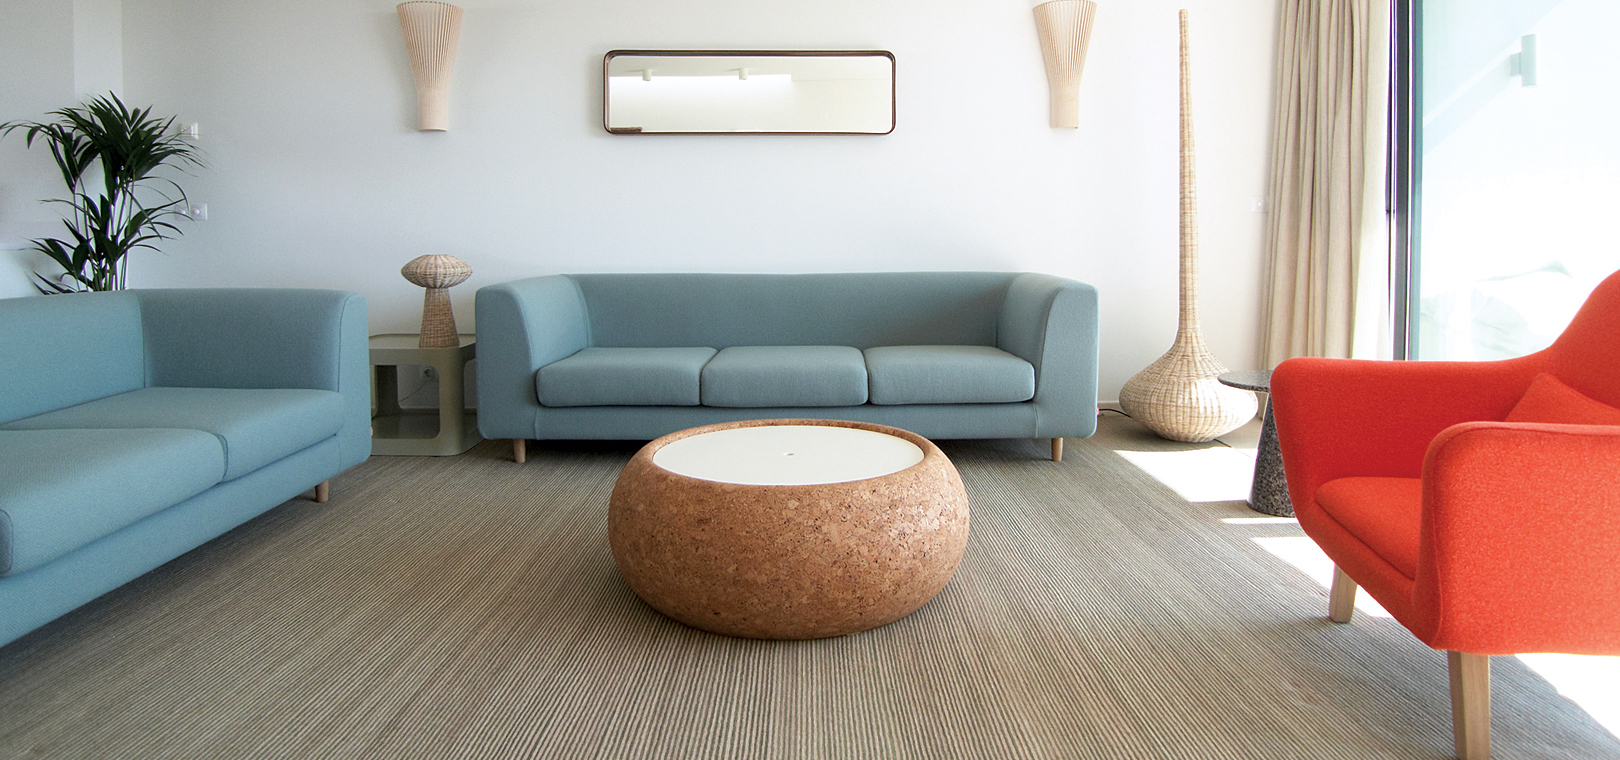 Beautiful blue sofas bright red arm chair unique round table in modern style